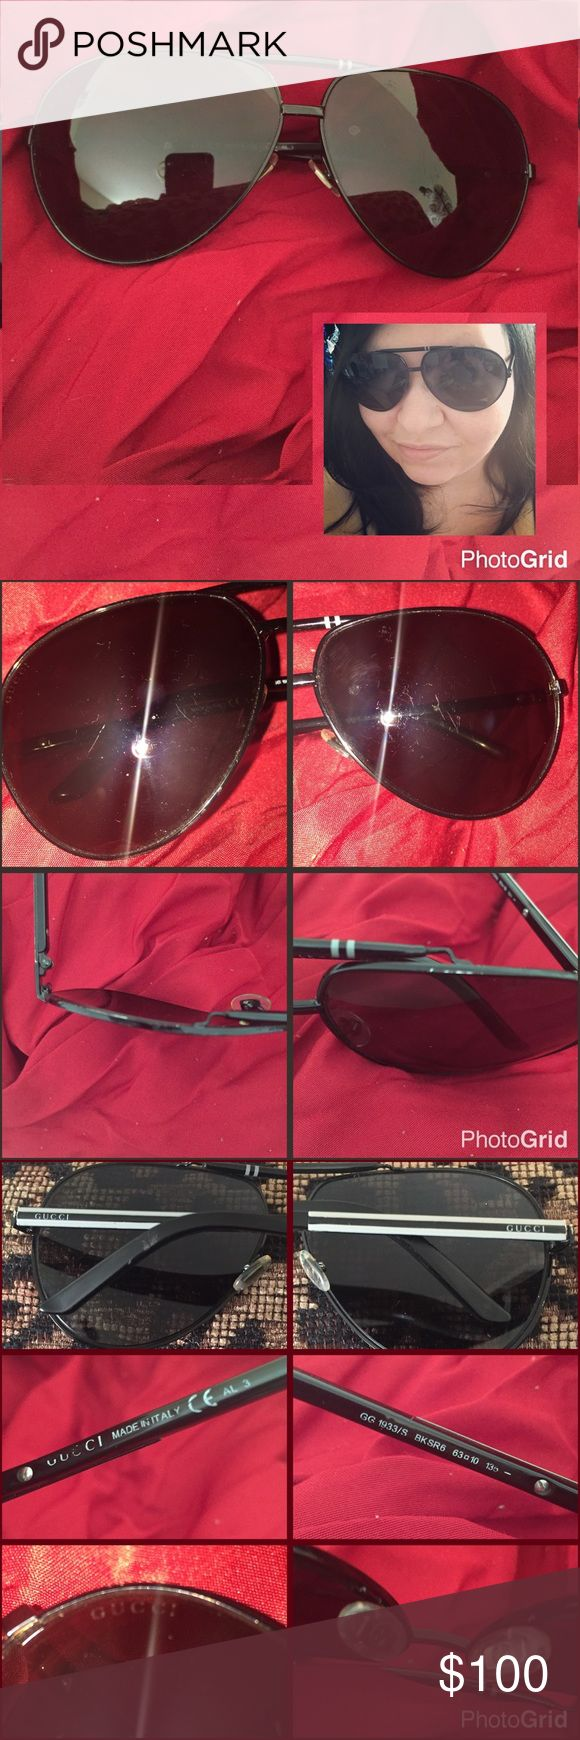 "Gucci Aviator Sunglasses Authentic Gucci aviator sunglasses. They're vintage & as such show some signs of wear (see pics). A few scratches on lens but not noticeable unless up close. I had to use the flash to get them to show up in pics. See pics for proof of authenticity: Nose pads feature Gucci logo, ""Gucci"" written on temples & one lens, made in Italy on arm. Price reflects old age & wear. ✅Make an offer Gucci Accessories Sunglasses"